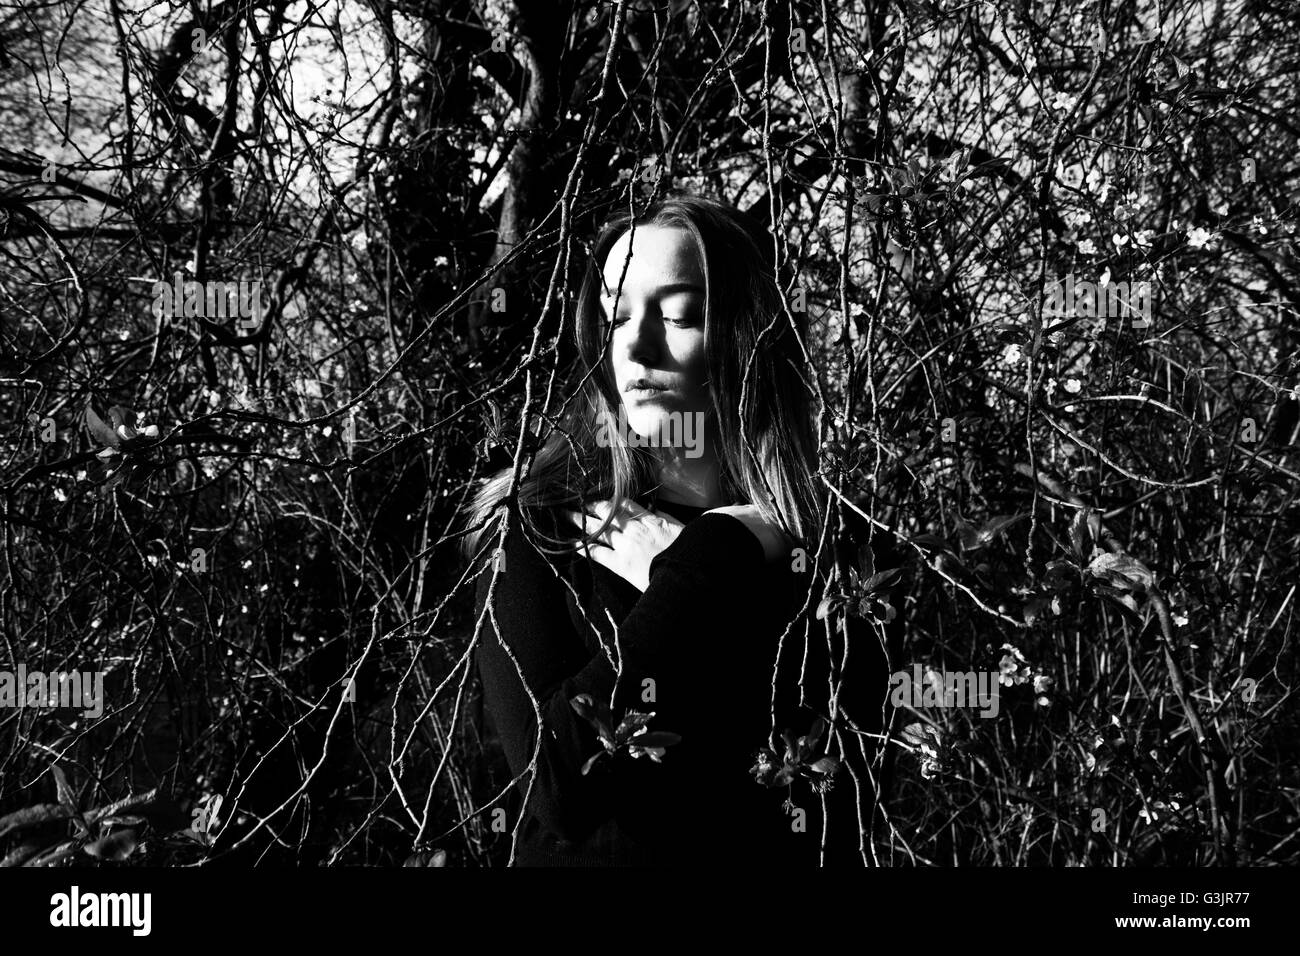 Lost, depressed girl in the woods. Black and white image. - Stock Image